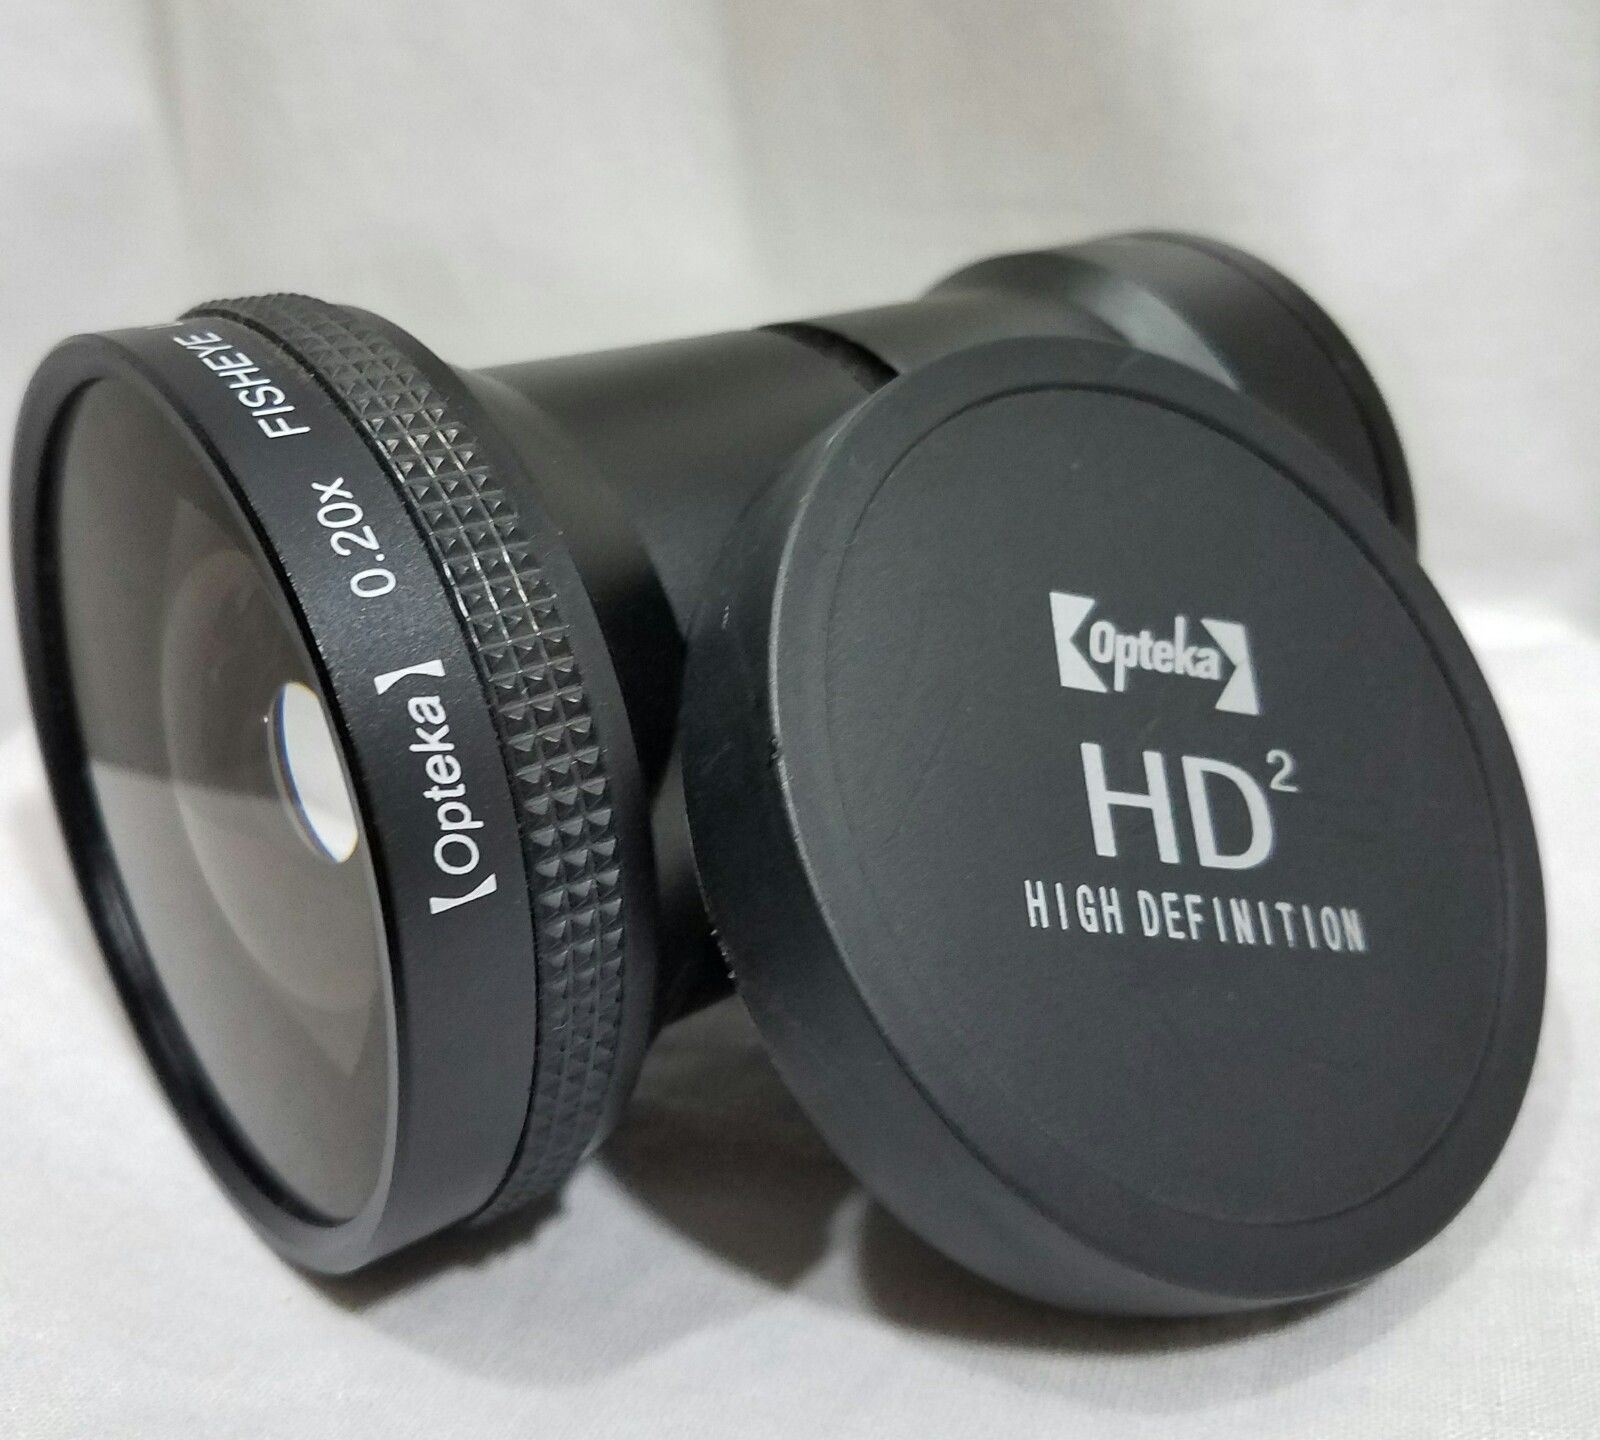 Camera Lens Opteka HD Fits Kodak Z612 Fisheye Converts a 18-55mm into a 3.2-11